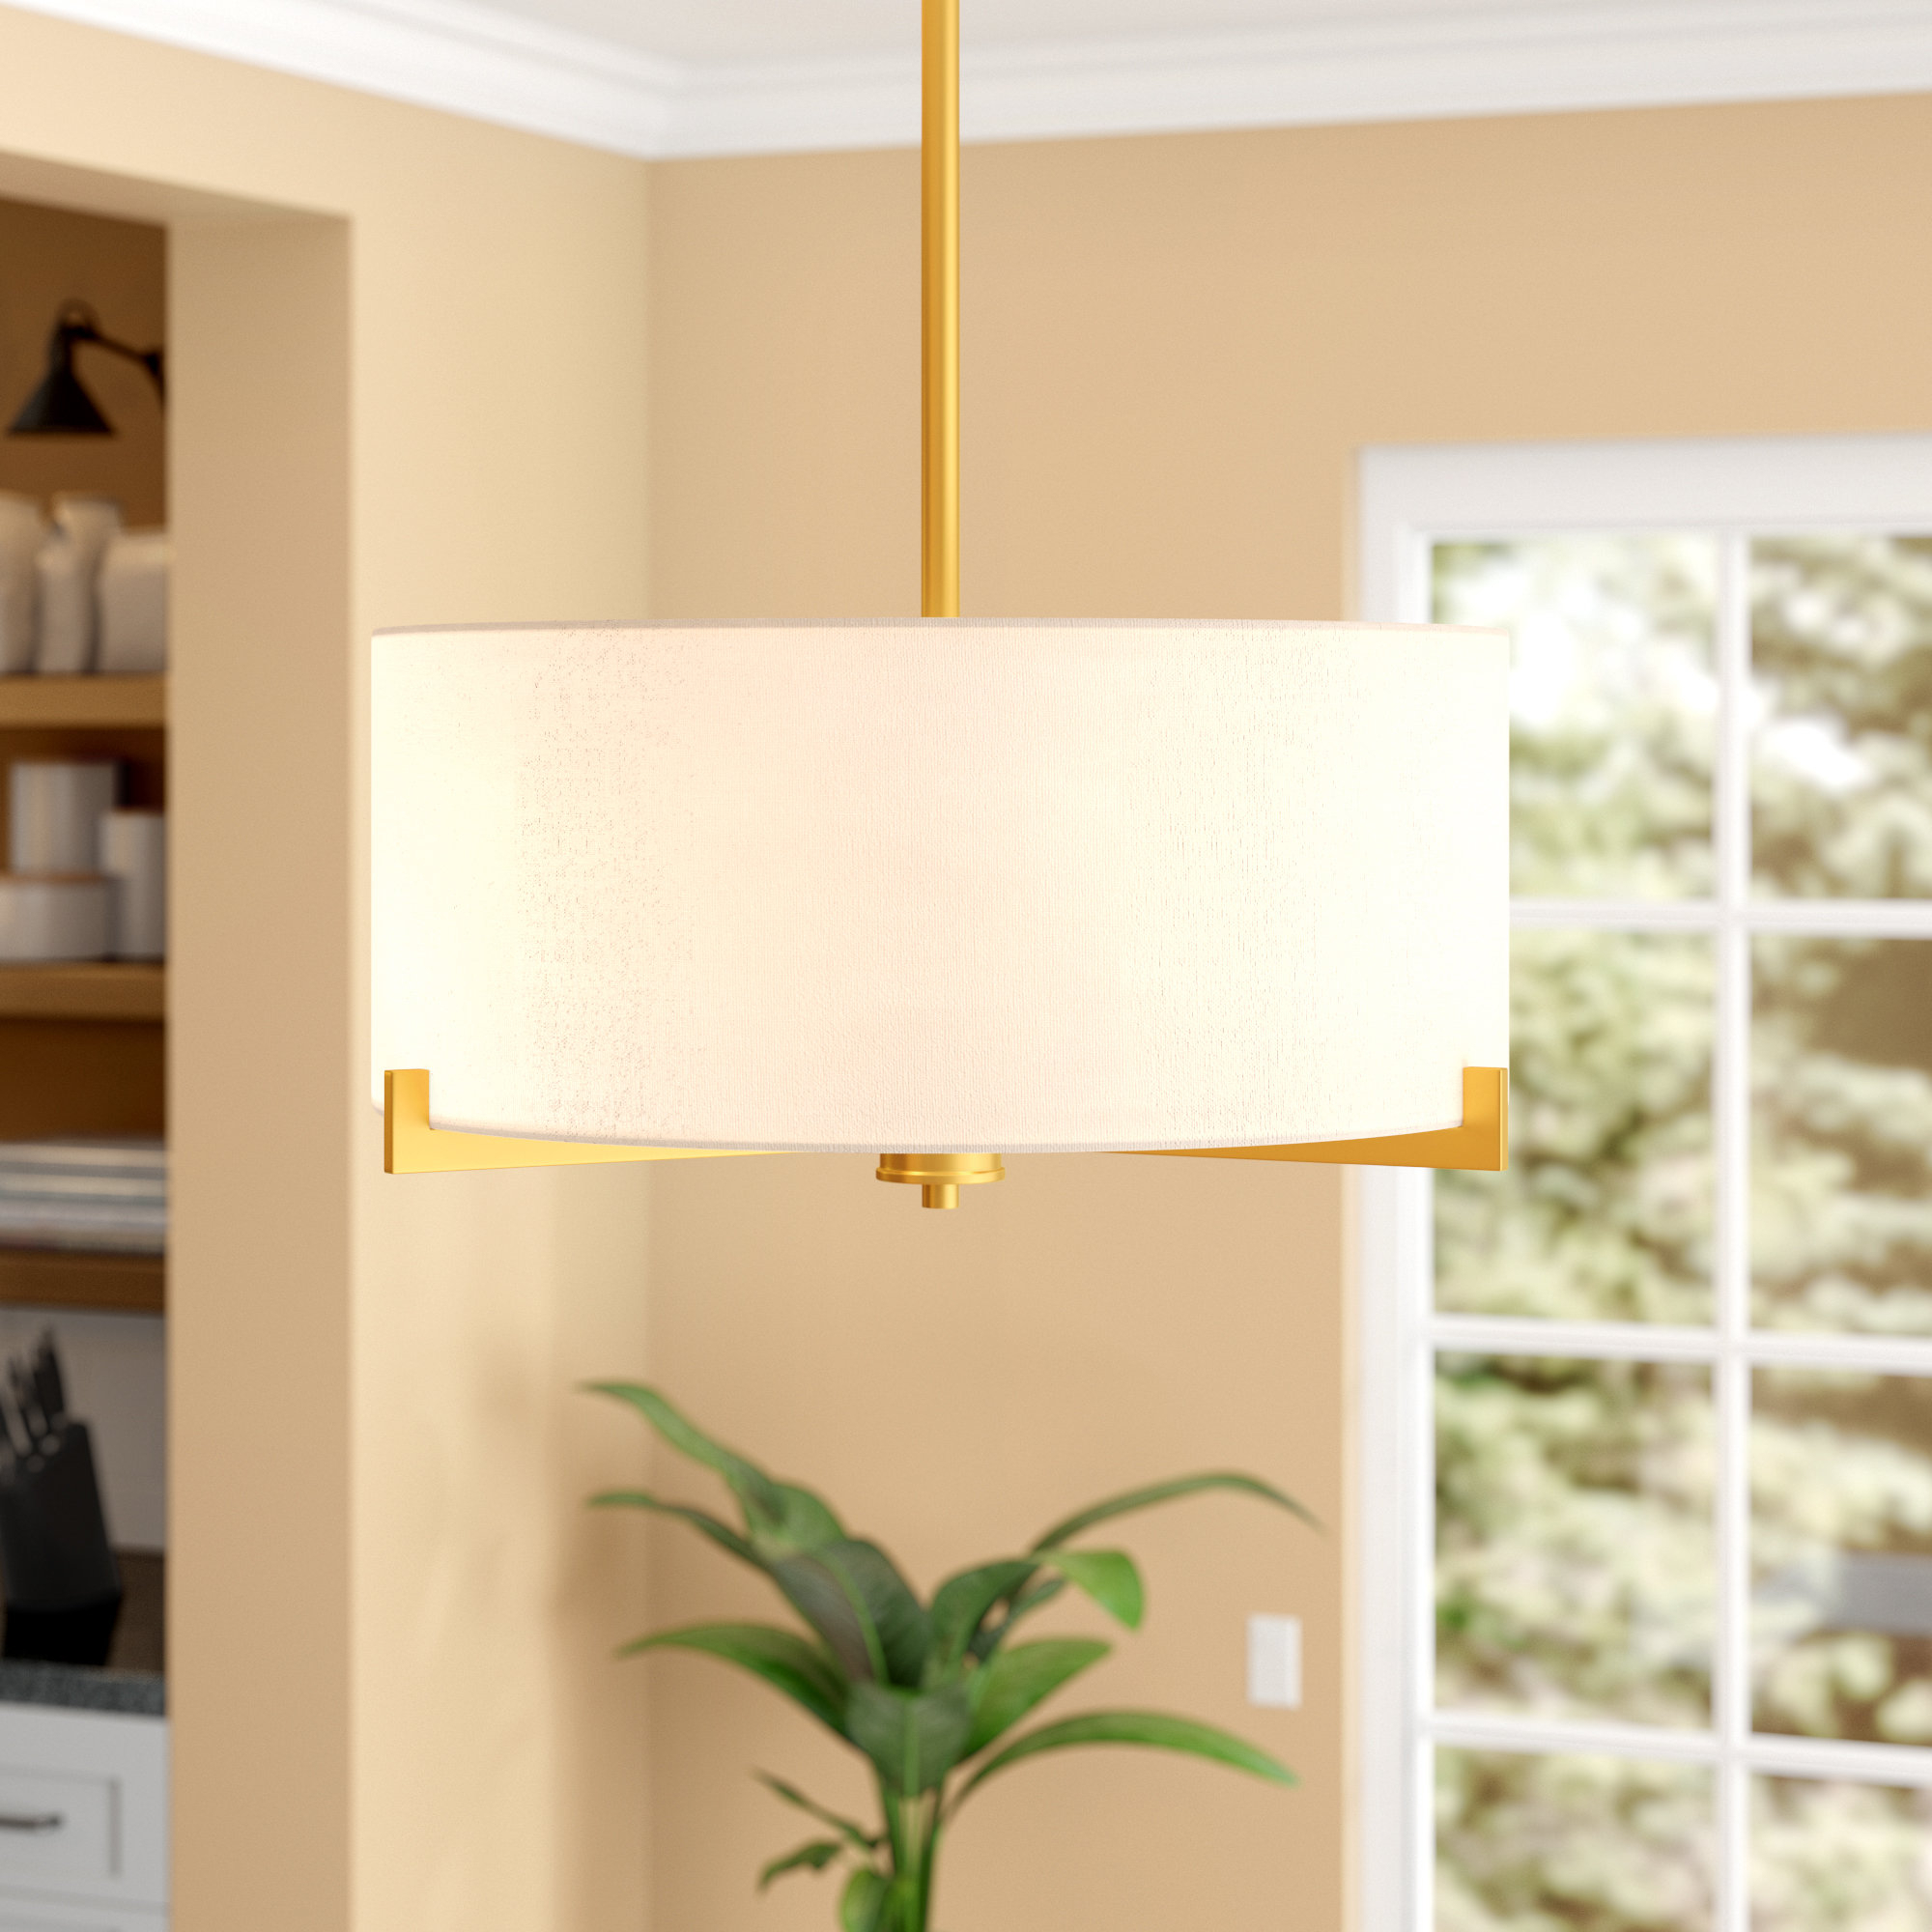 Widely Used Dirksen 3 Light Single Cylinder Chandeliers Pertaining To Avondale 3 Light Drum Chandelier (View 15 of 20)